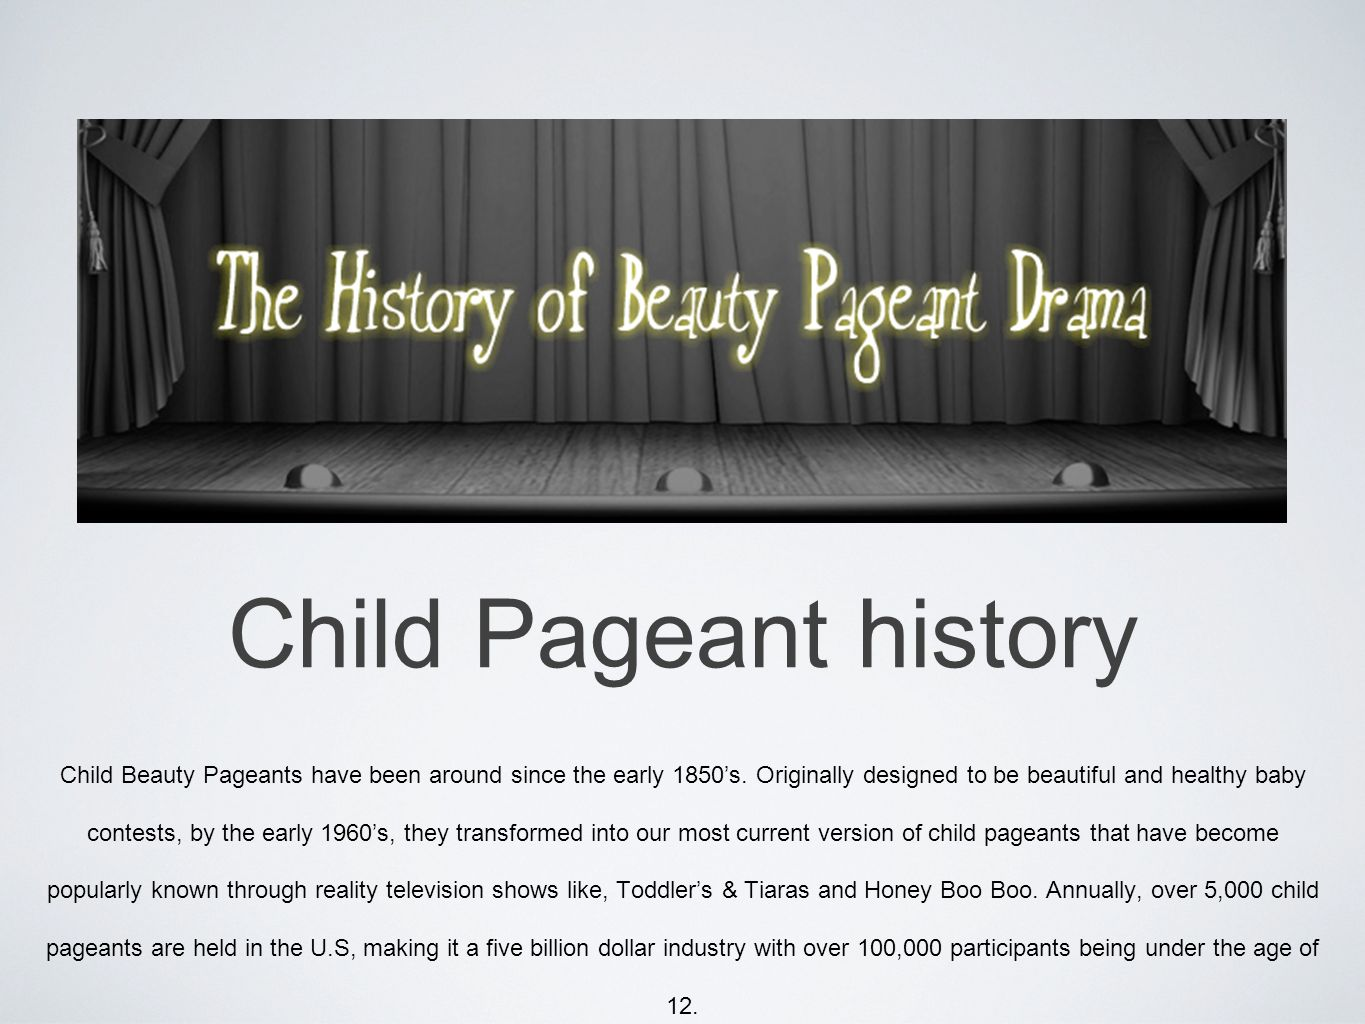 Exploitation in Child Beauty Pageants  Child Pageant history Child